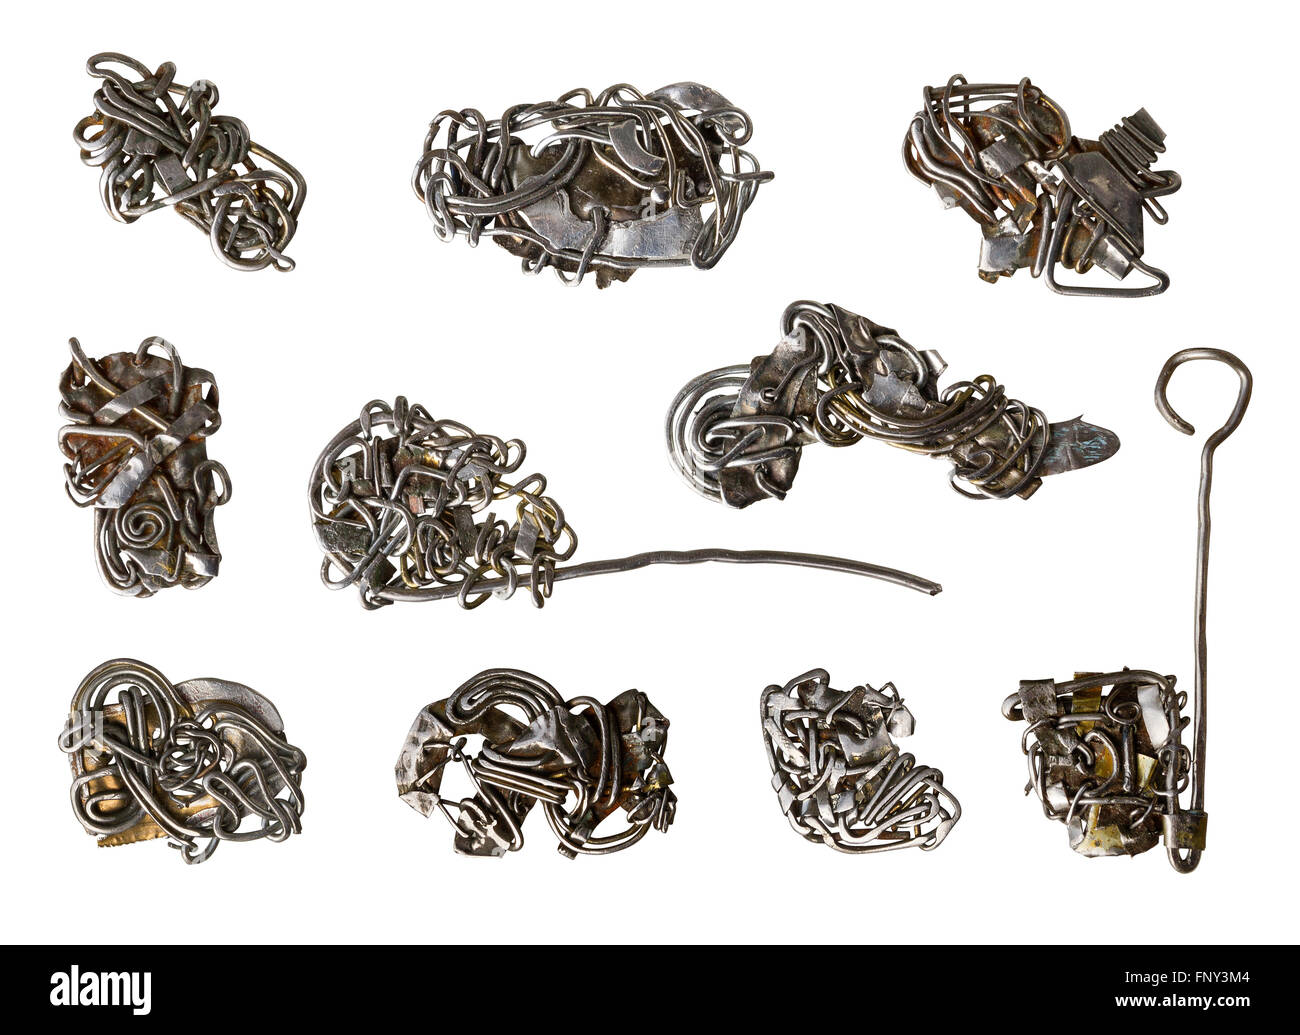 Handmade abstract steampunk rusty wire jewellery set. Isolated on white - Stock Image